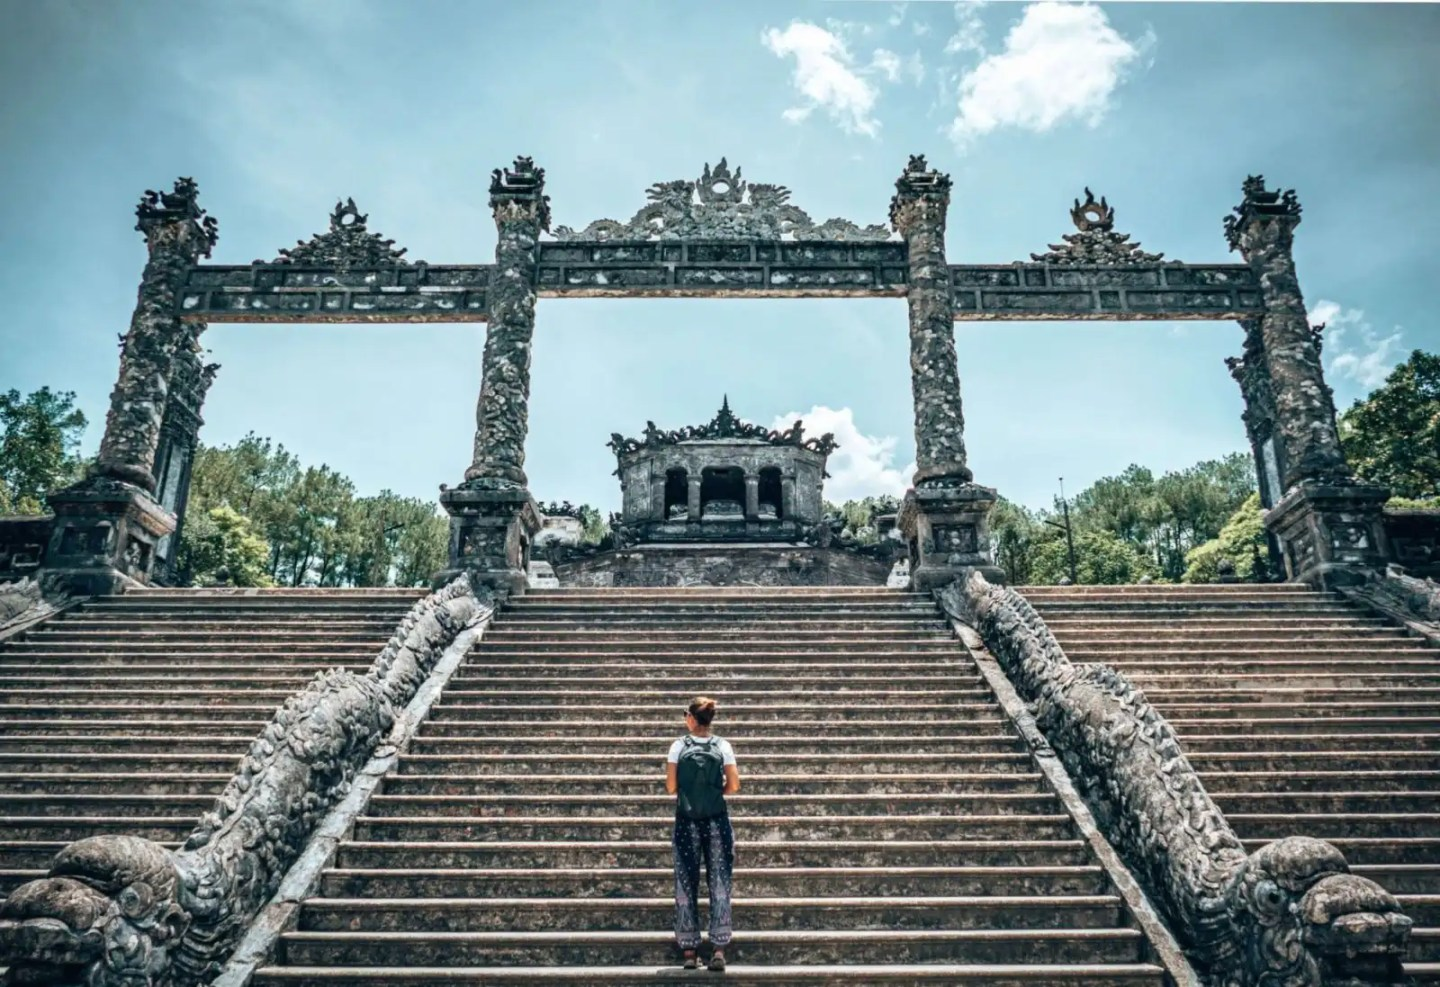 Girl walking up stairs at the Khai Dinh tomb in Hue Vietnam